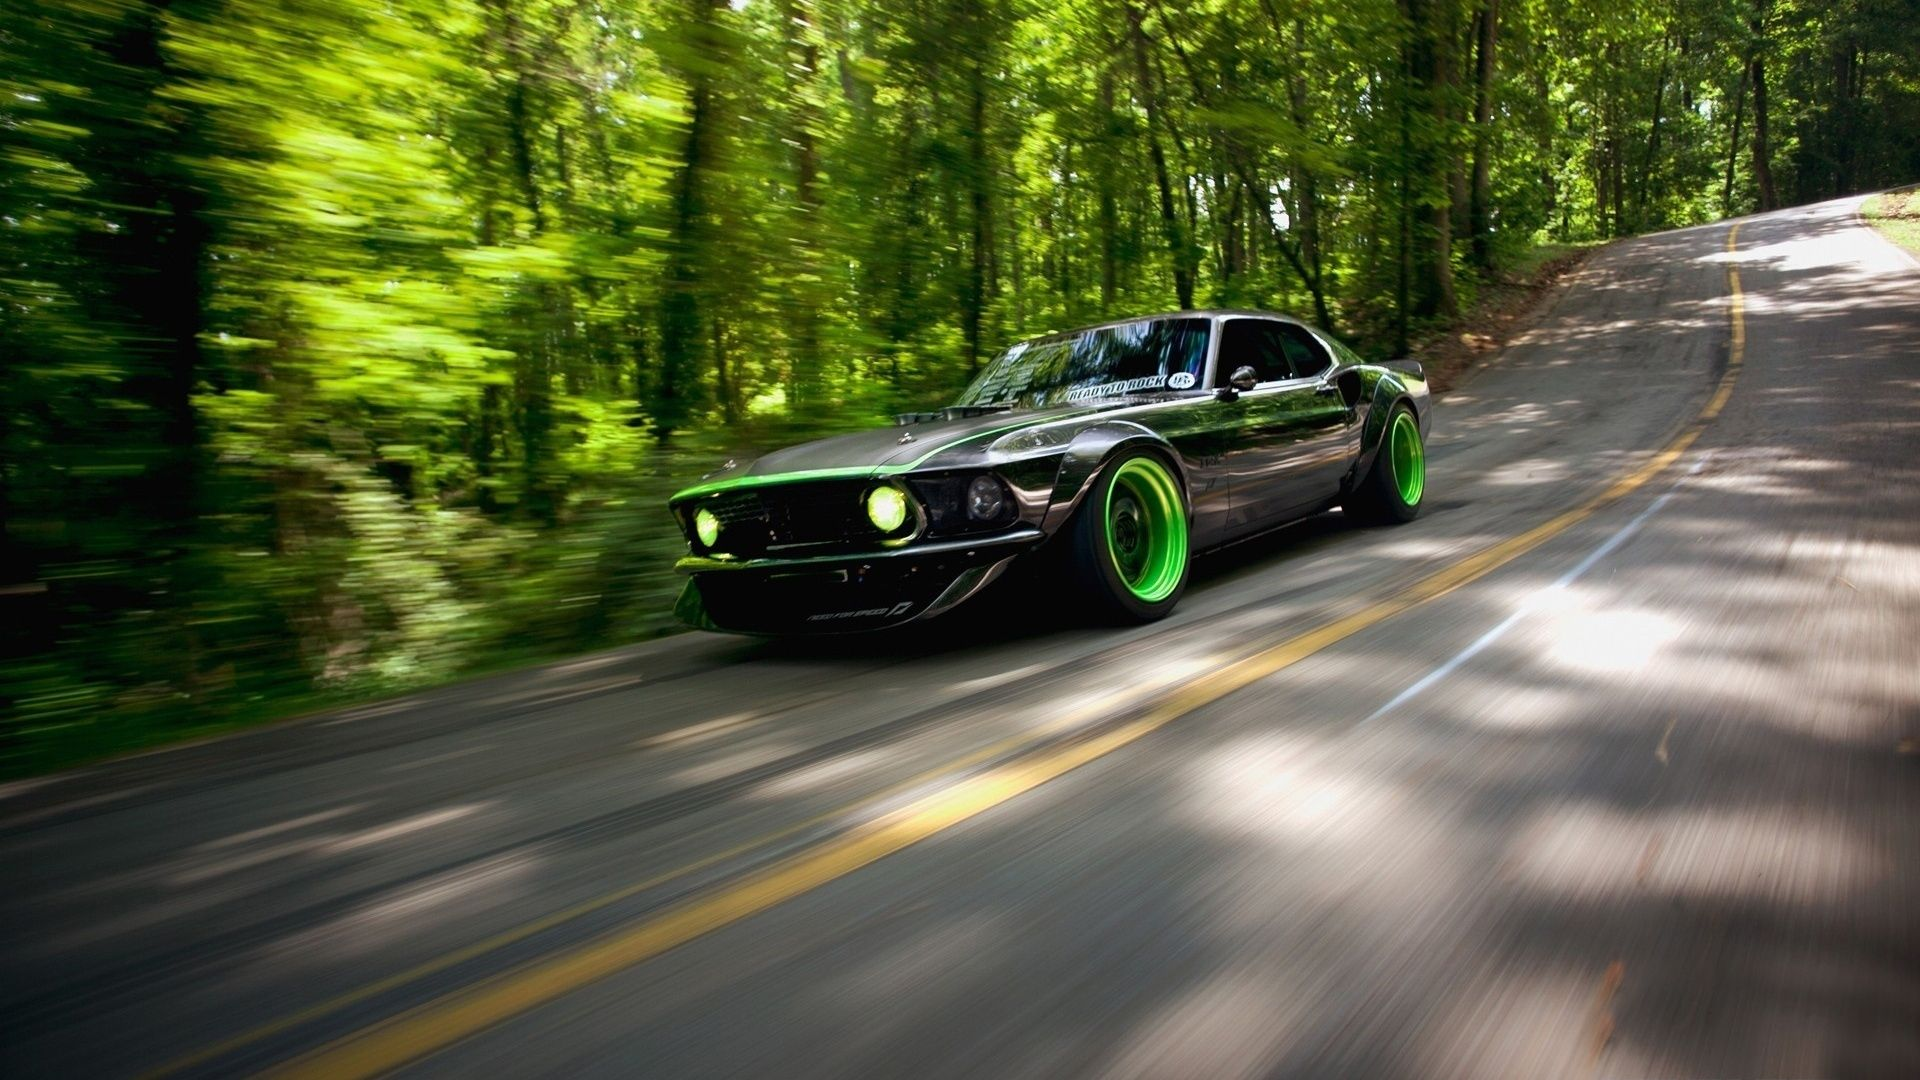 Cars Wallpapers For Windows 8 Hdawallpaper Ford Mustang Wallpaper Mustang Ford Mustang